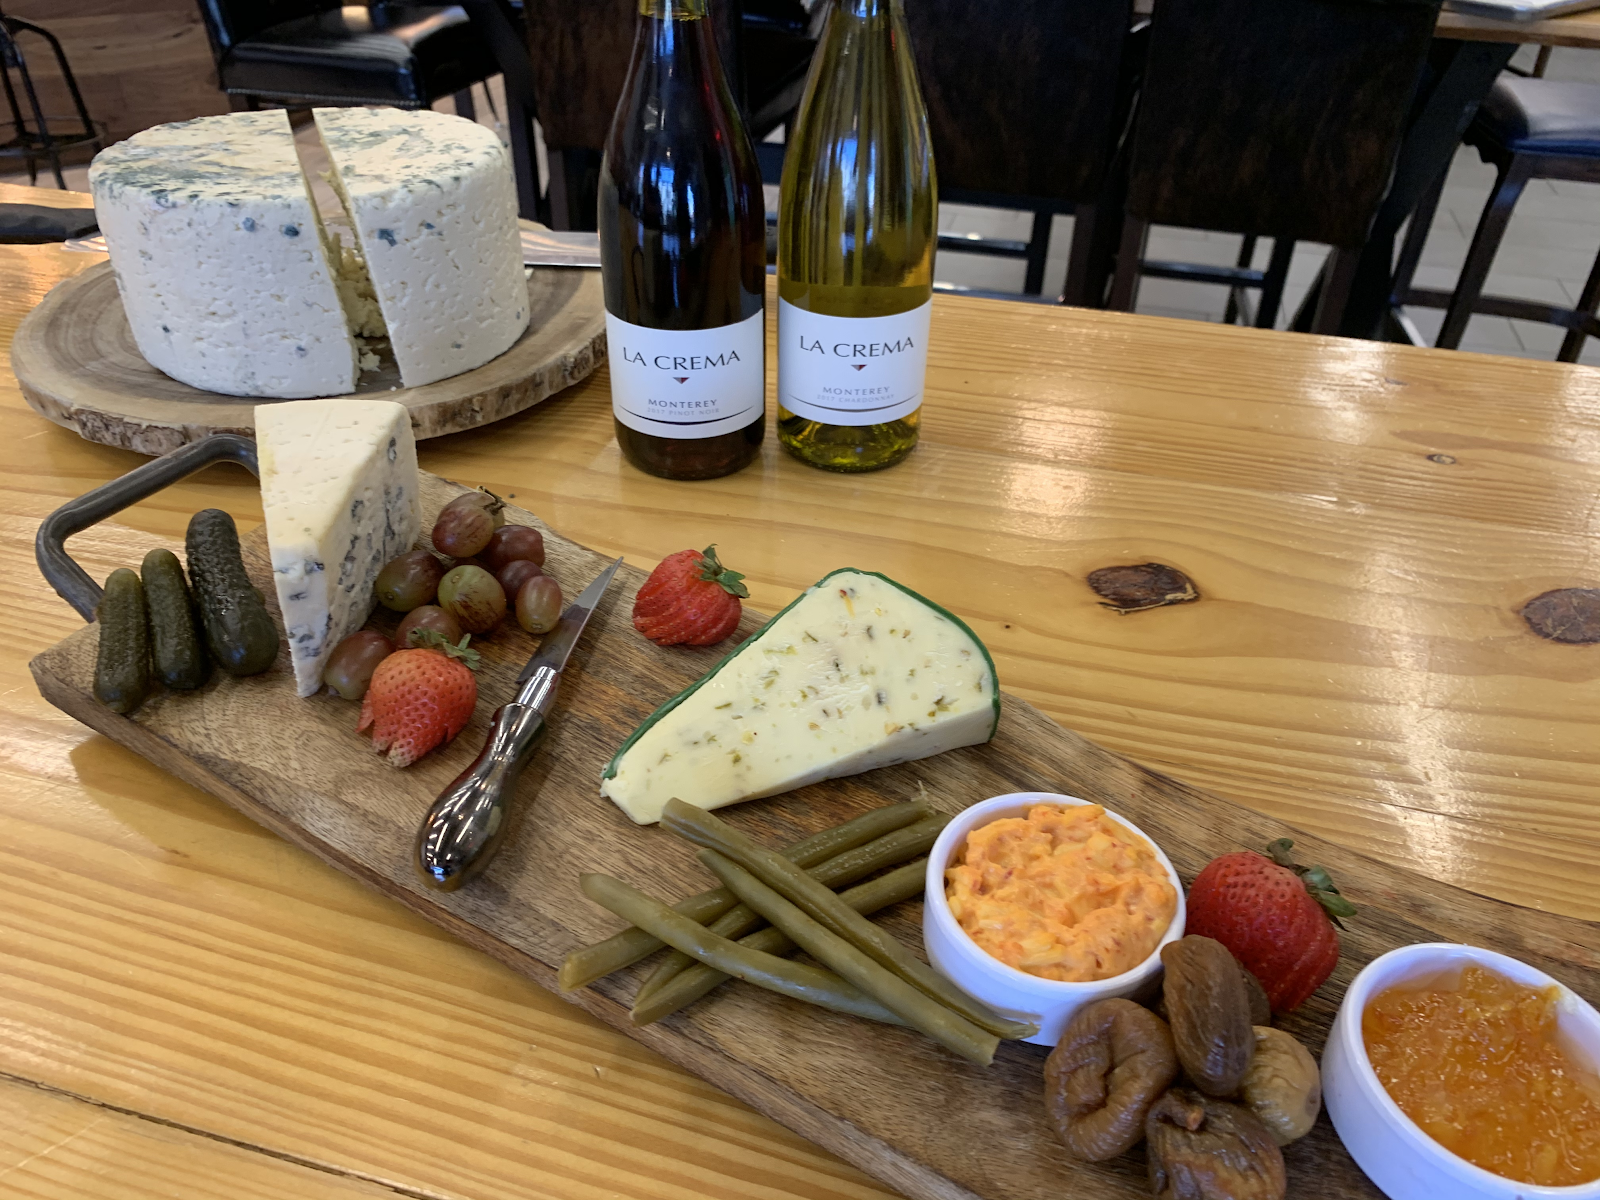 A cheese board and bottles of wine at Nosh and Bottle in Irving, TX